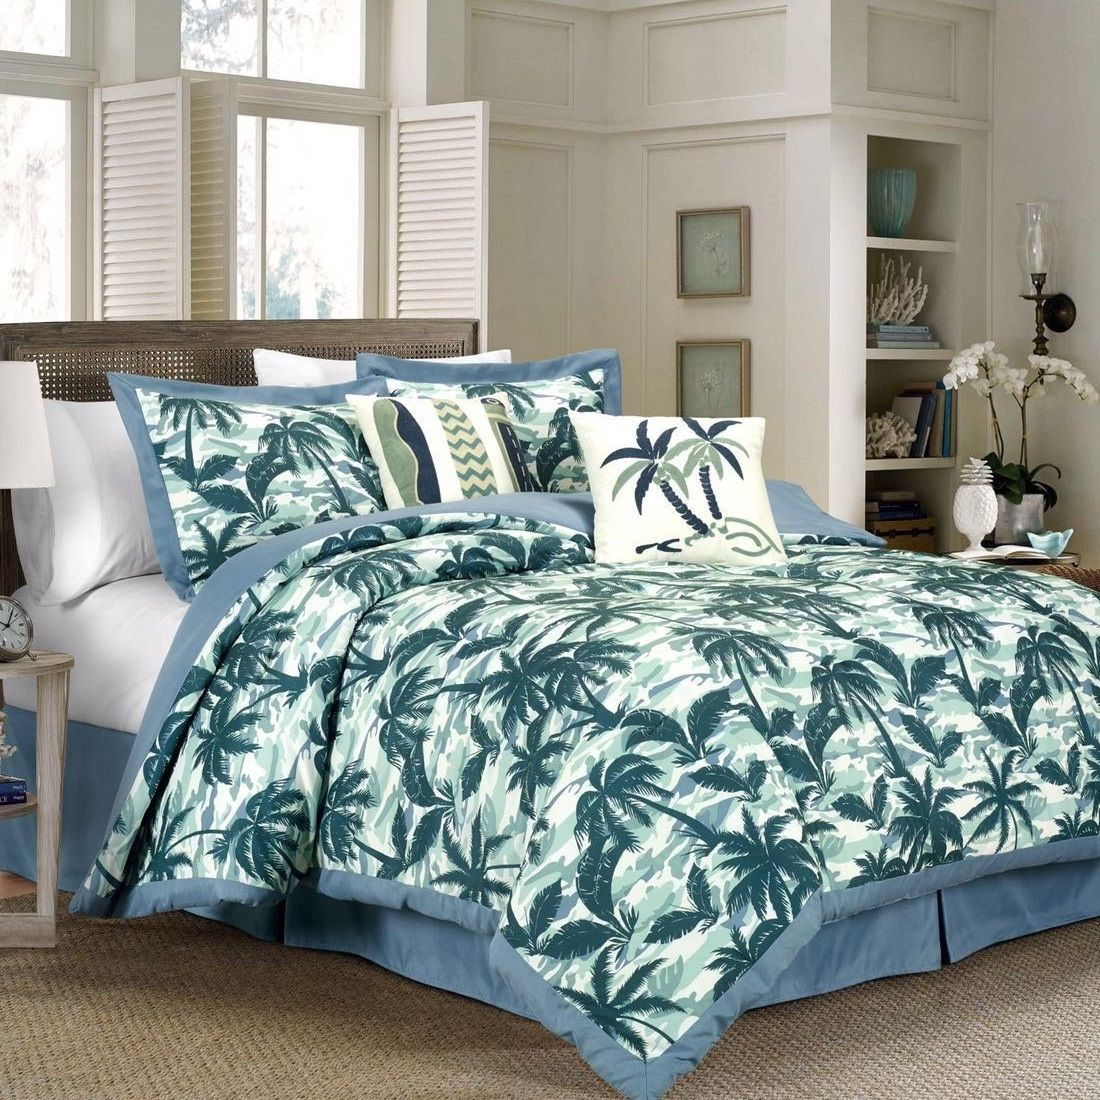 Surf Bedding Sets List! Discover The Best Surf Comforters, Quilts, Duvet  Covers, Surf Sheets, And More For Your Home. You Can Find The Best  Surfboard ...